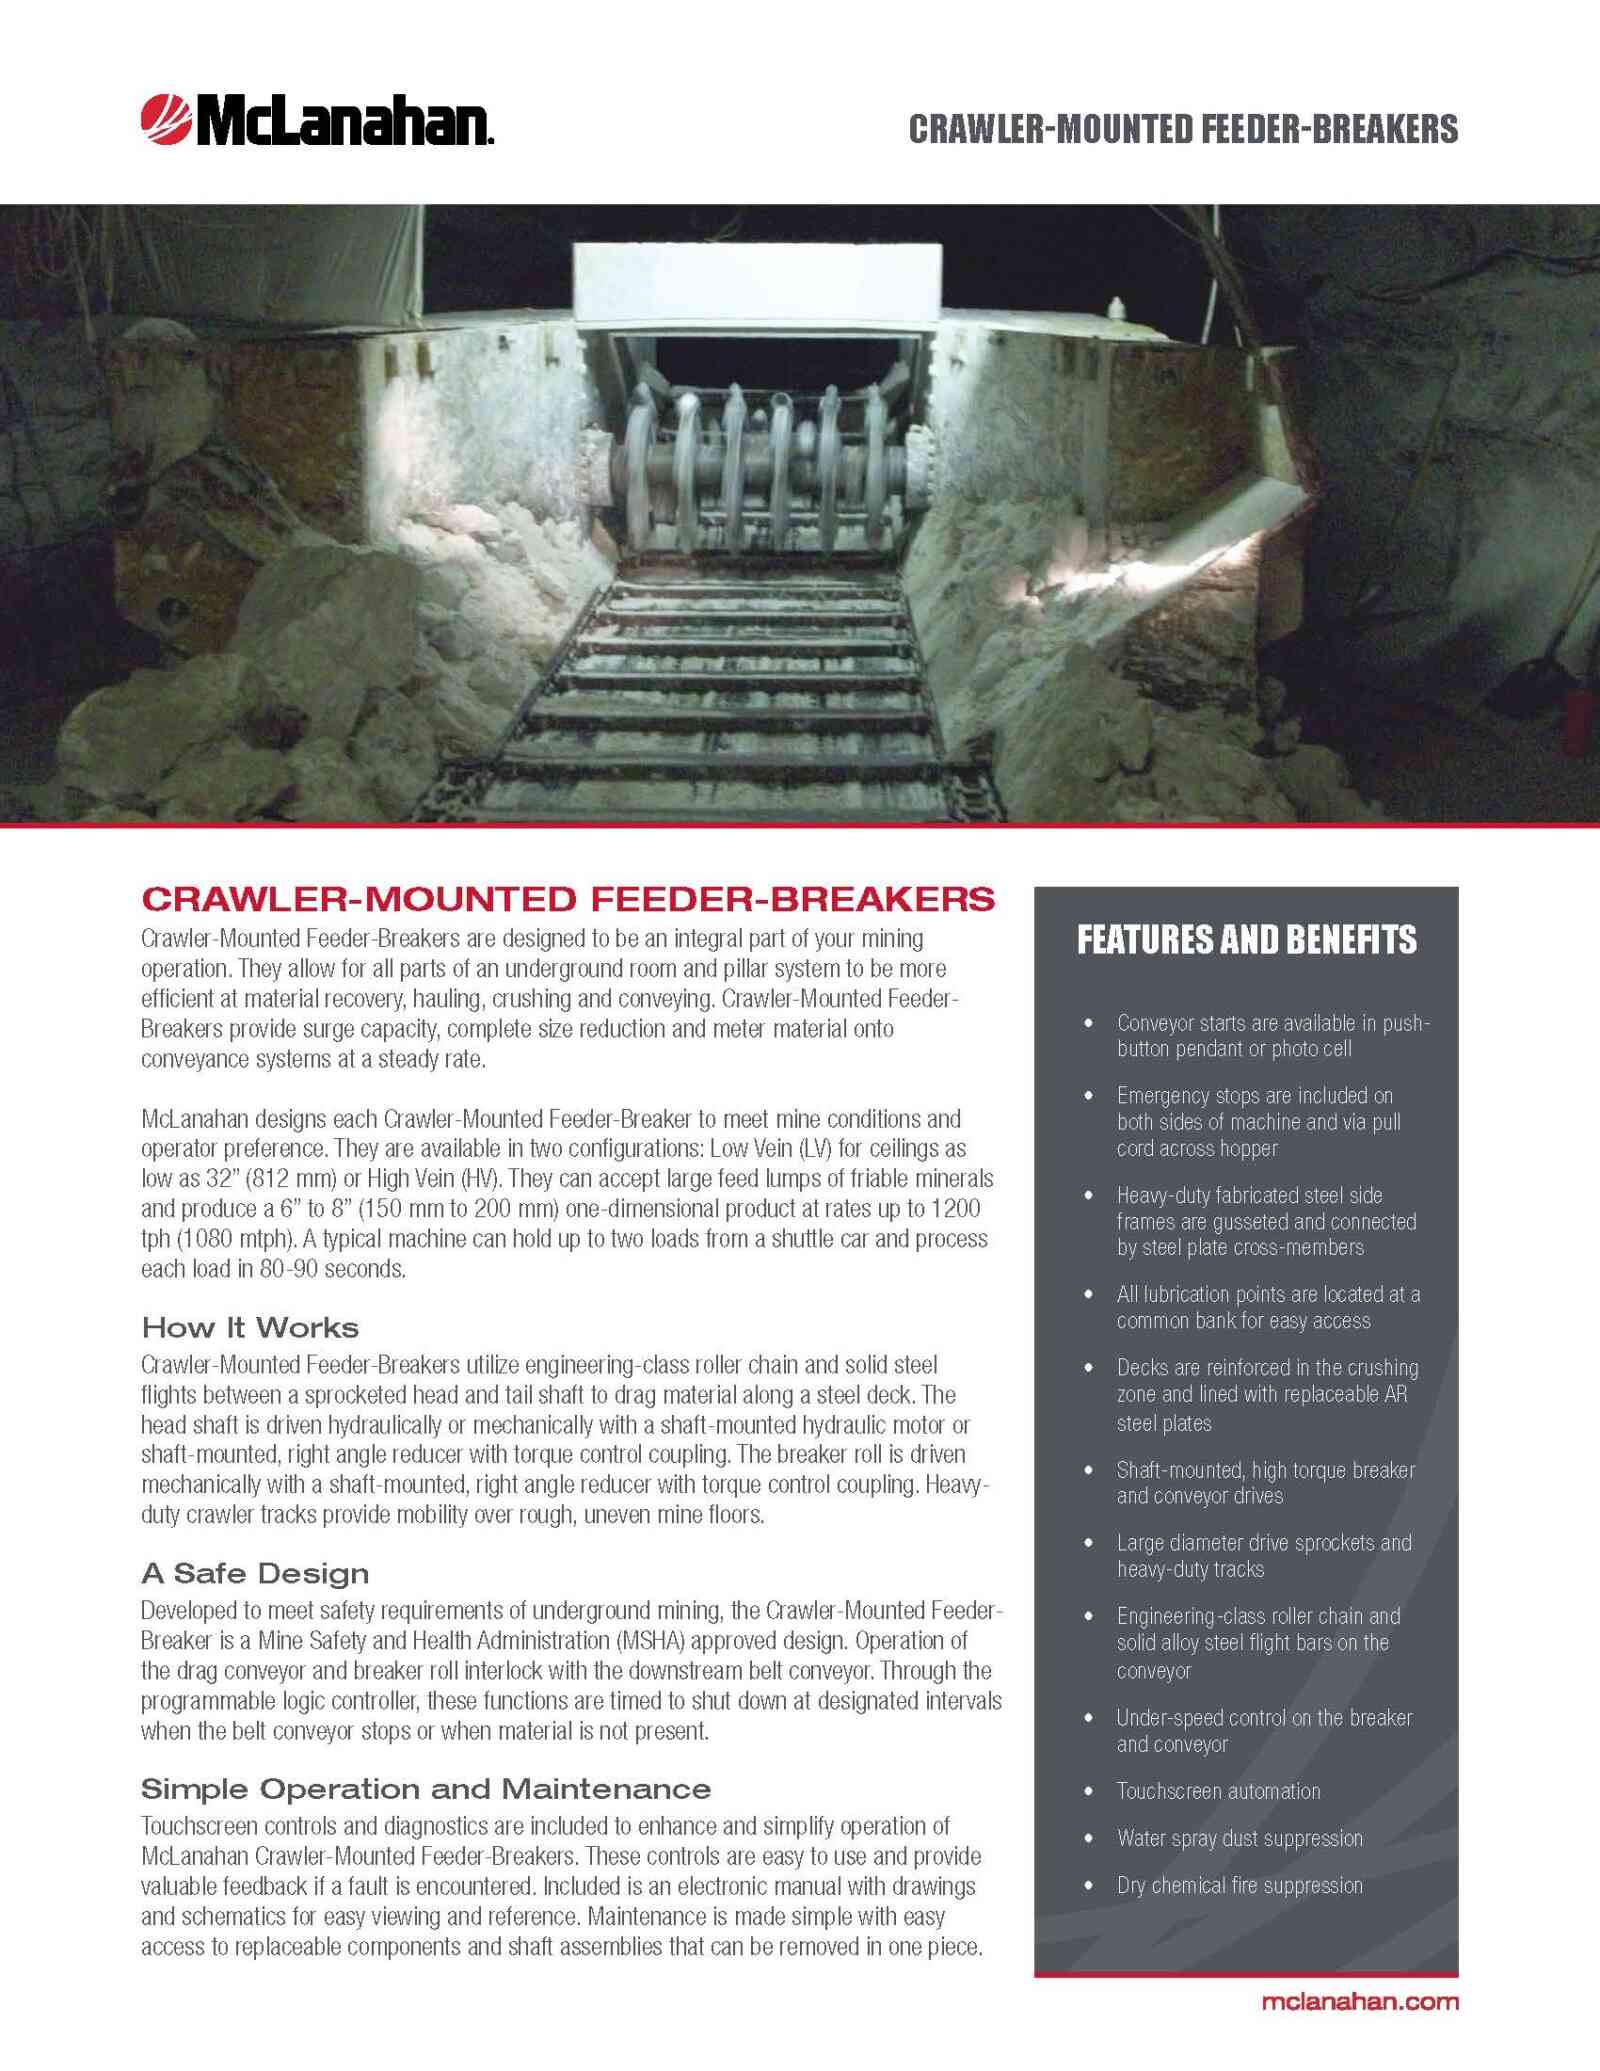 Crawler Mounted Feeder Breaker Brochure Image Page 1